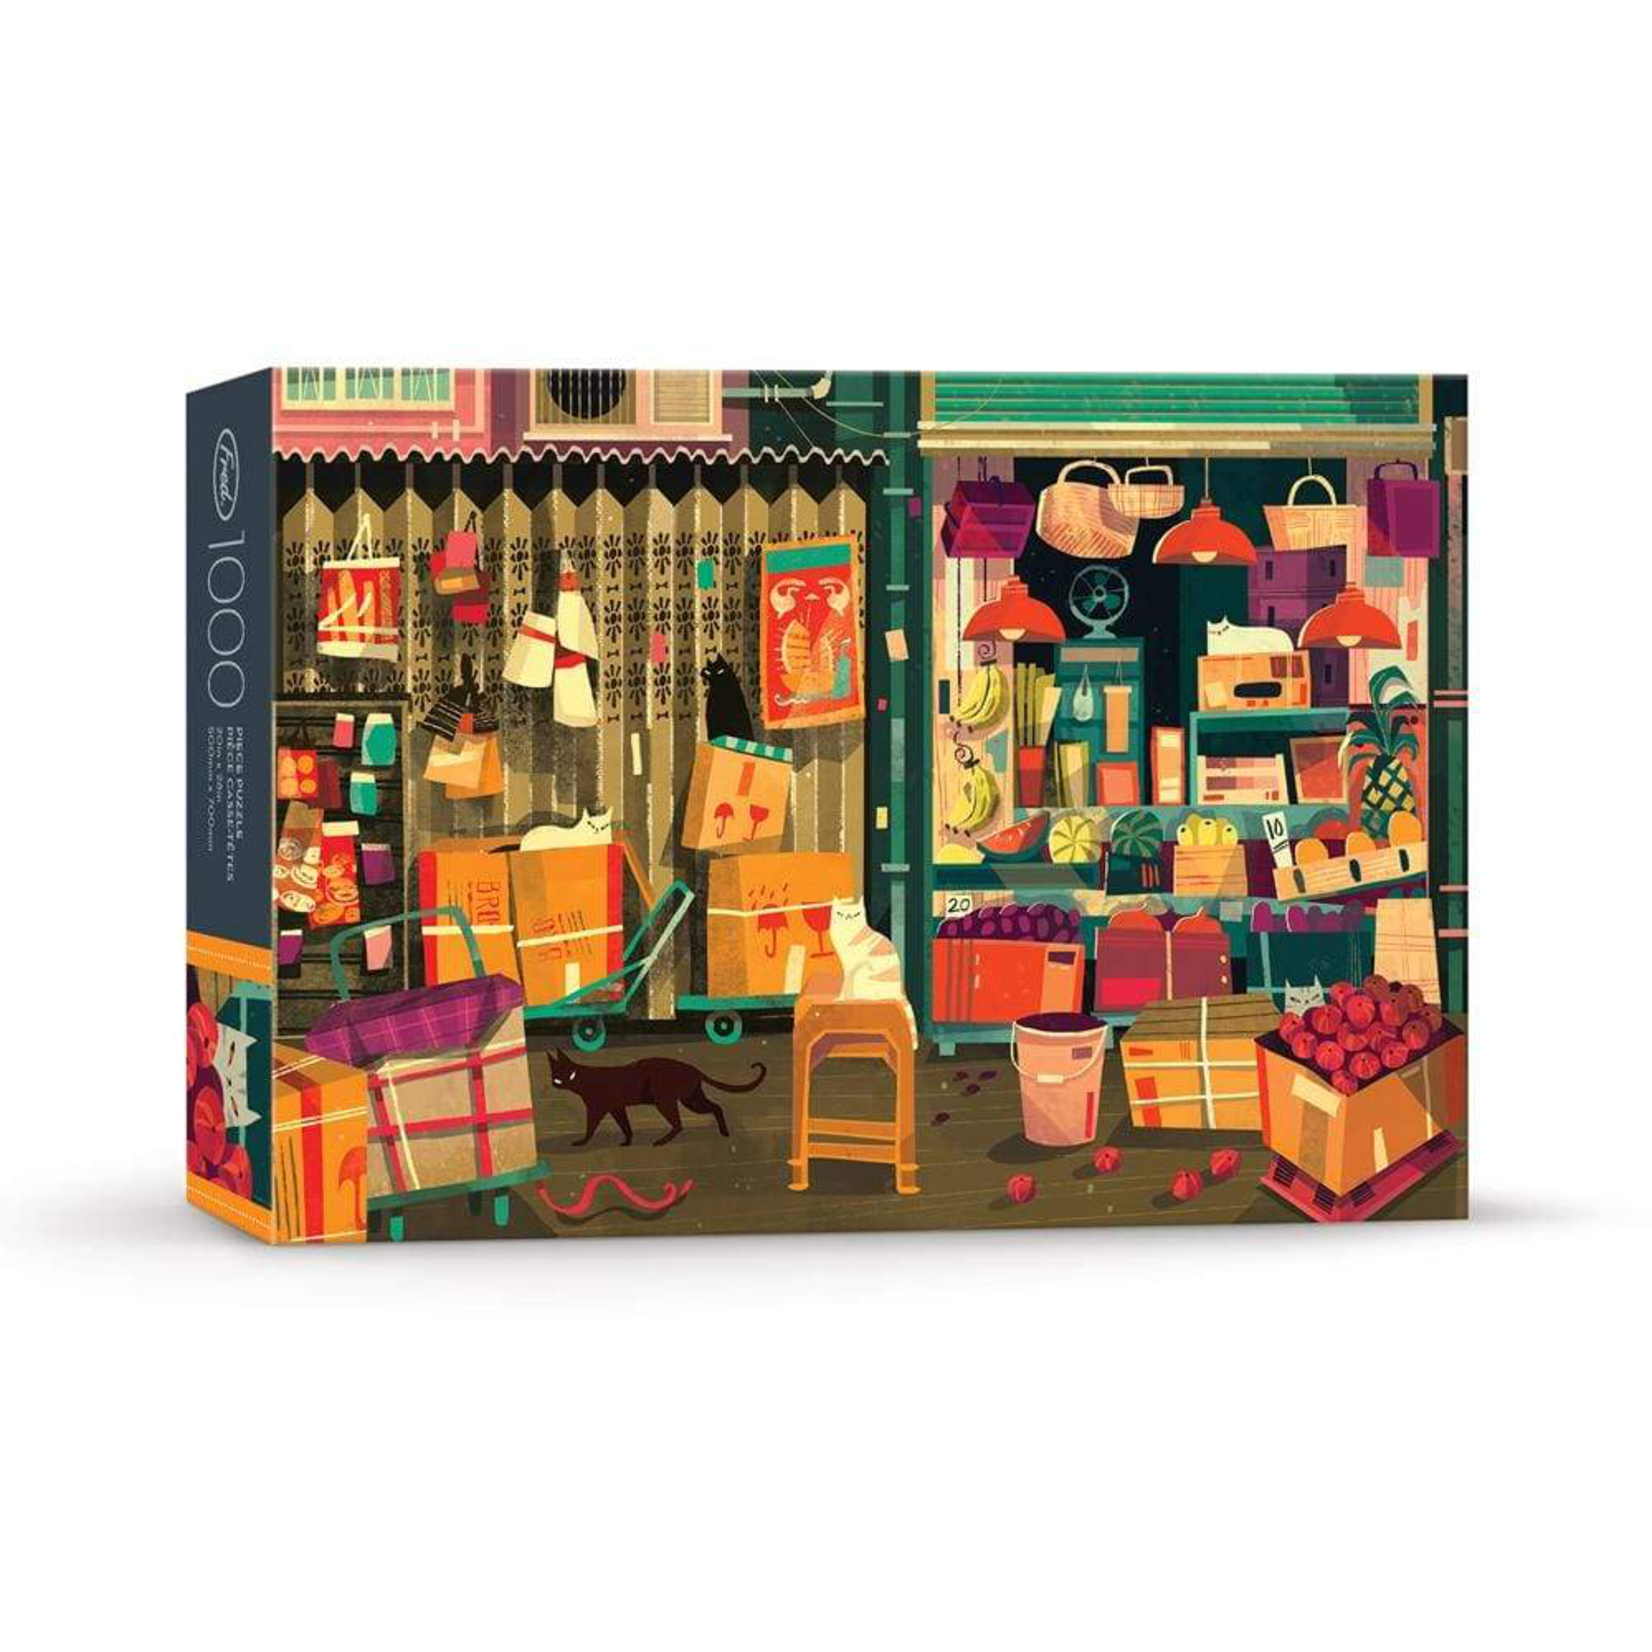 Fred & Friends Shop Cats 1000pc